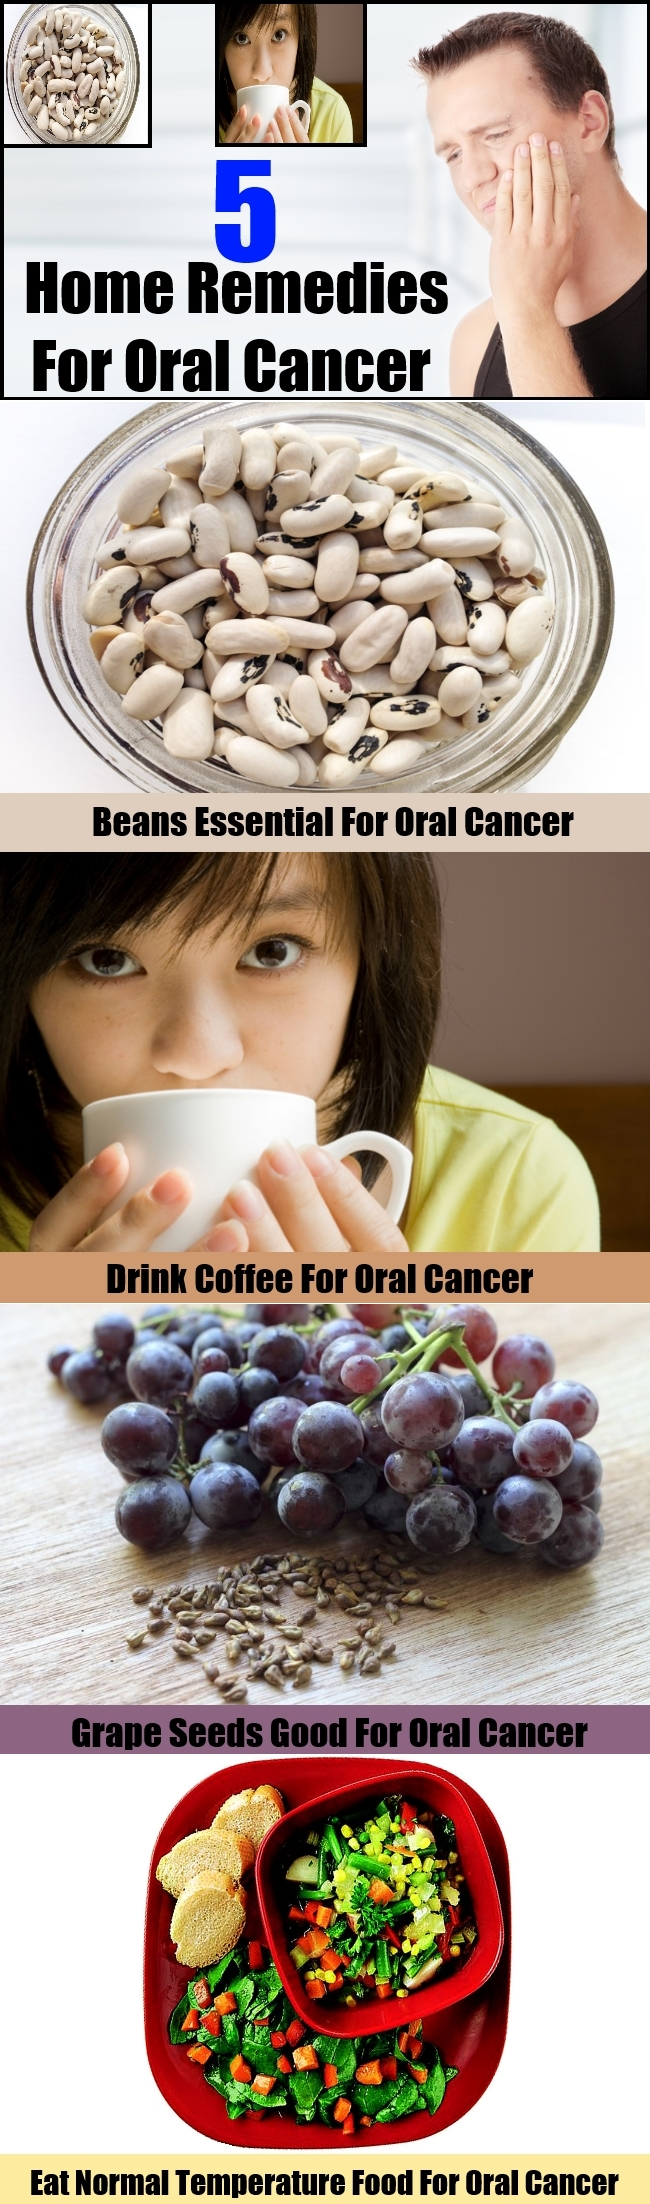 Top 5 Home Remedies For Oral Cancer